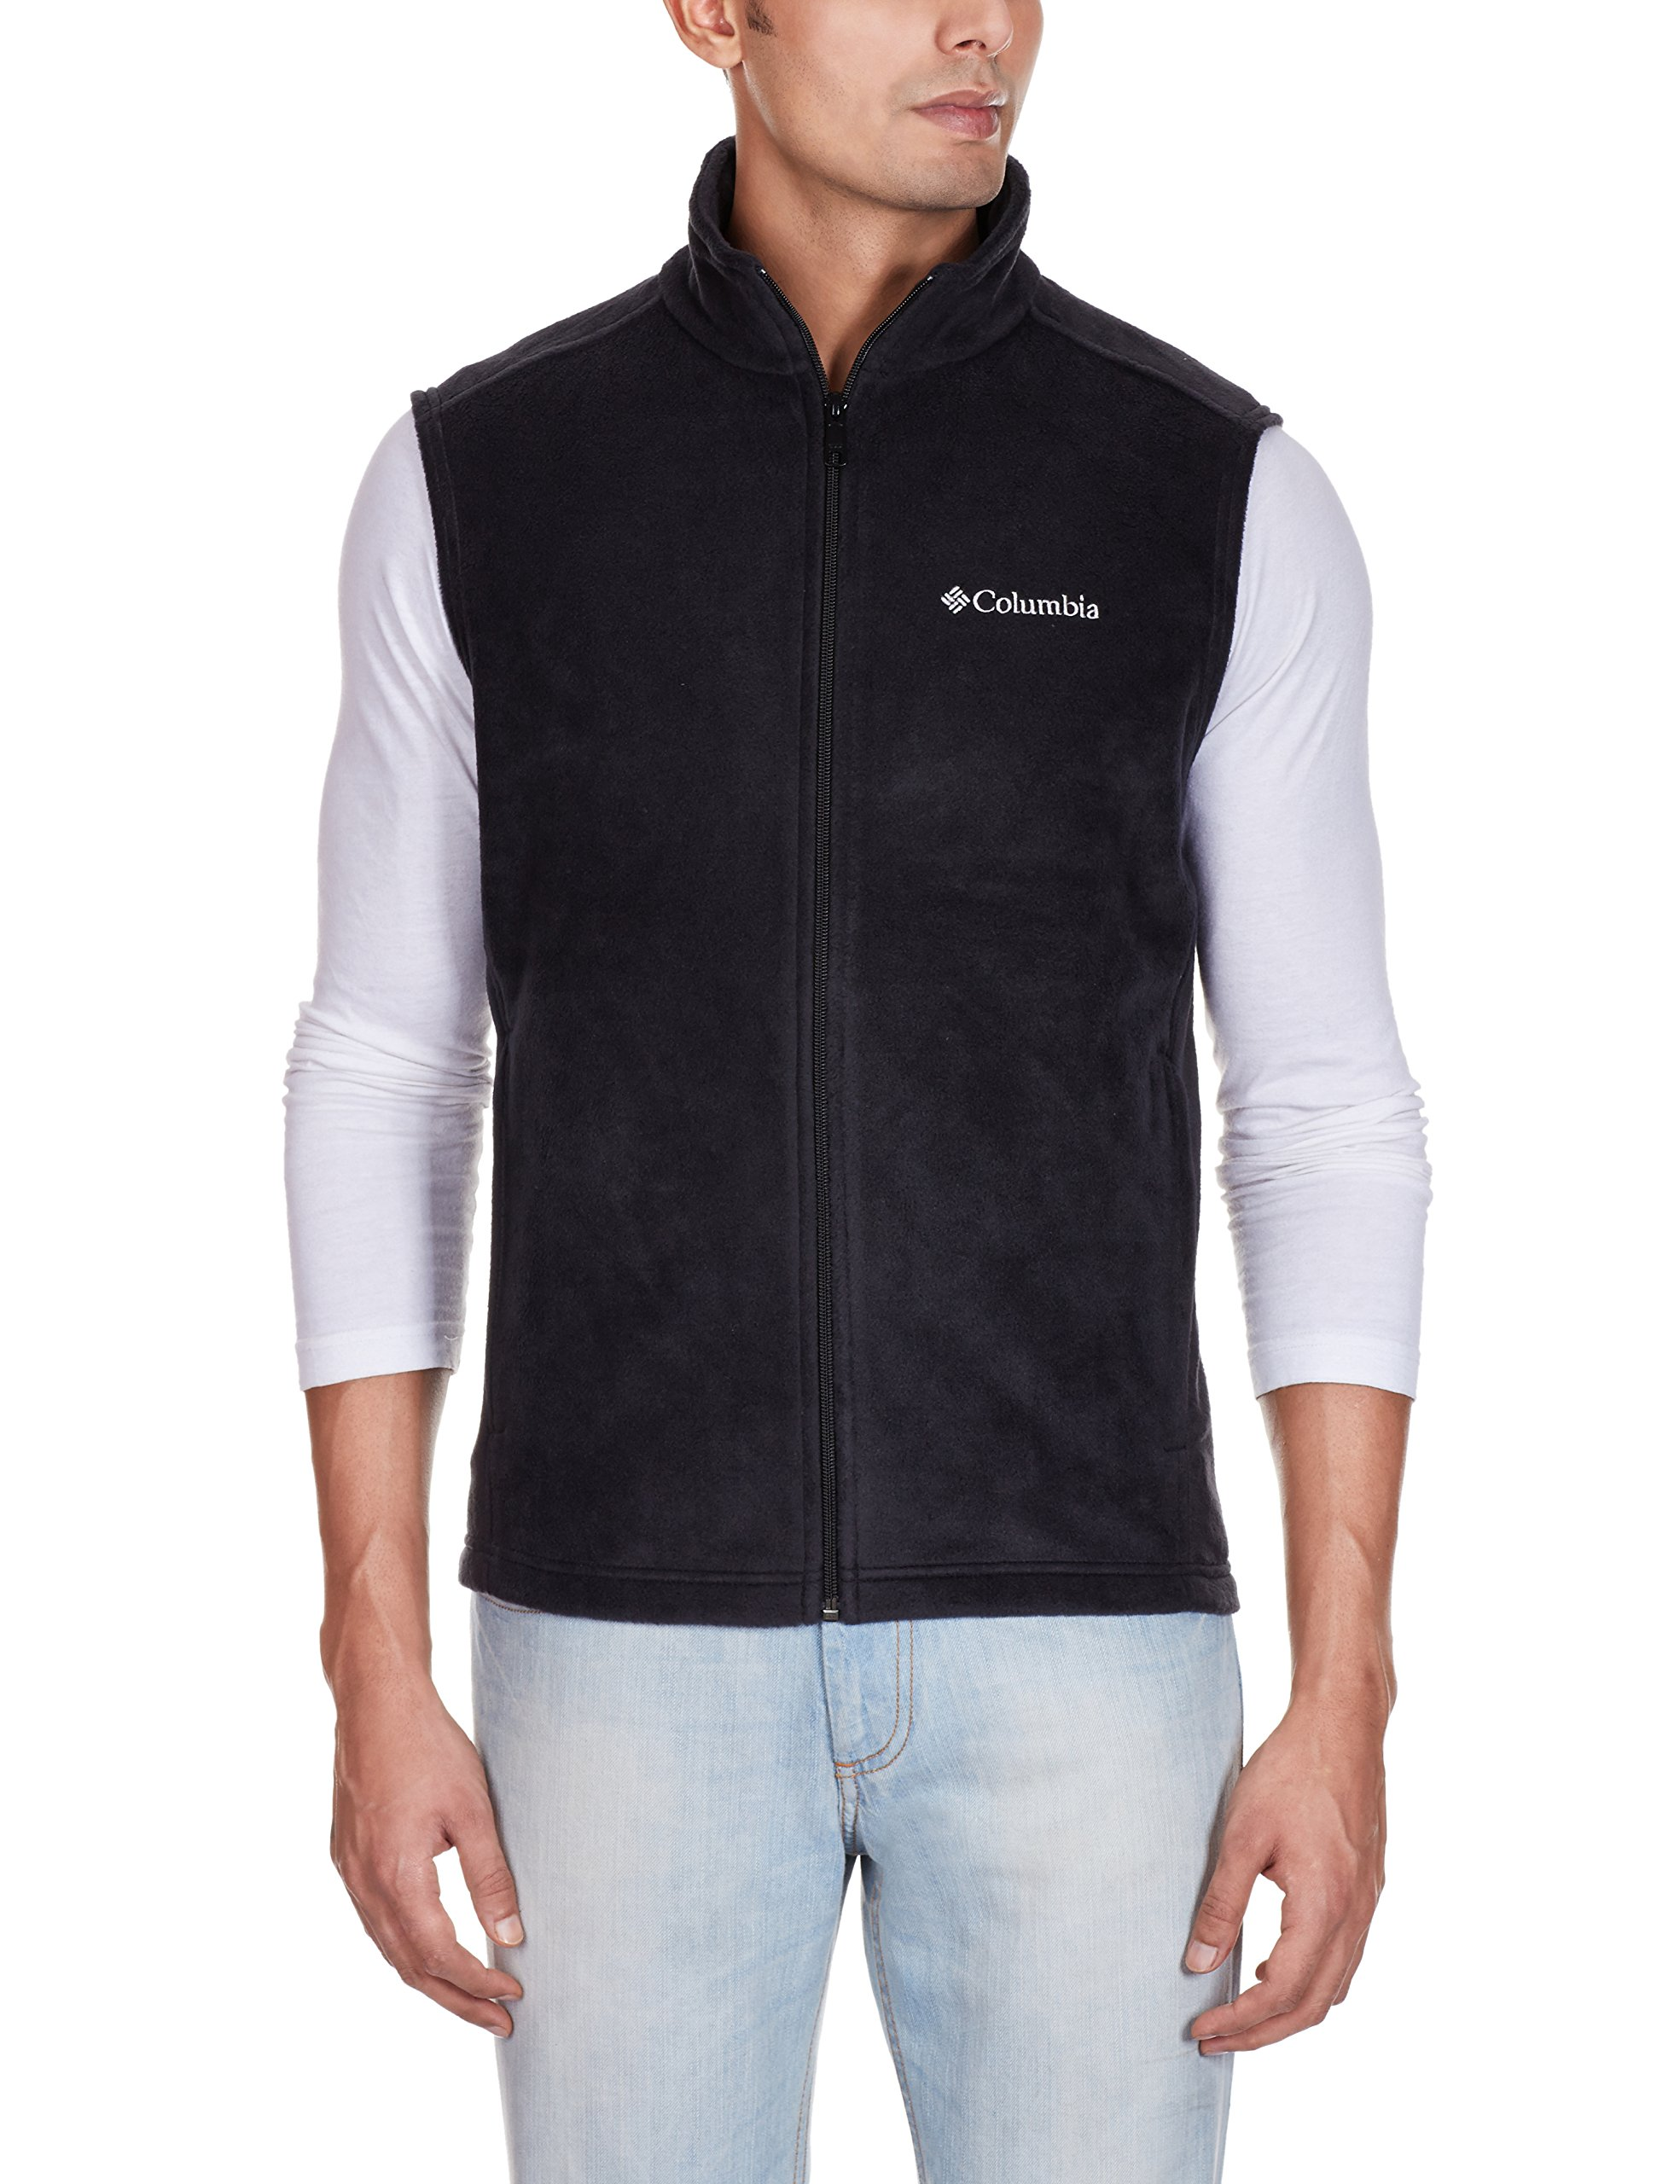 Columbia Men's Cathedral Peak II Fleece Vest, Black, X-Large